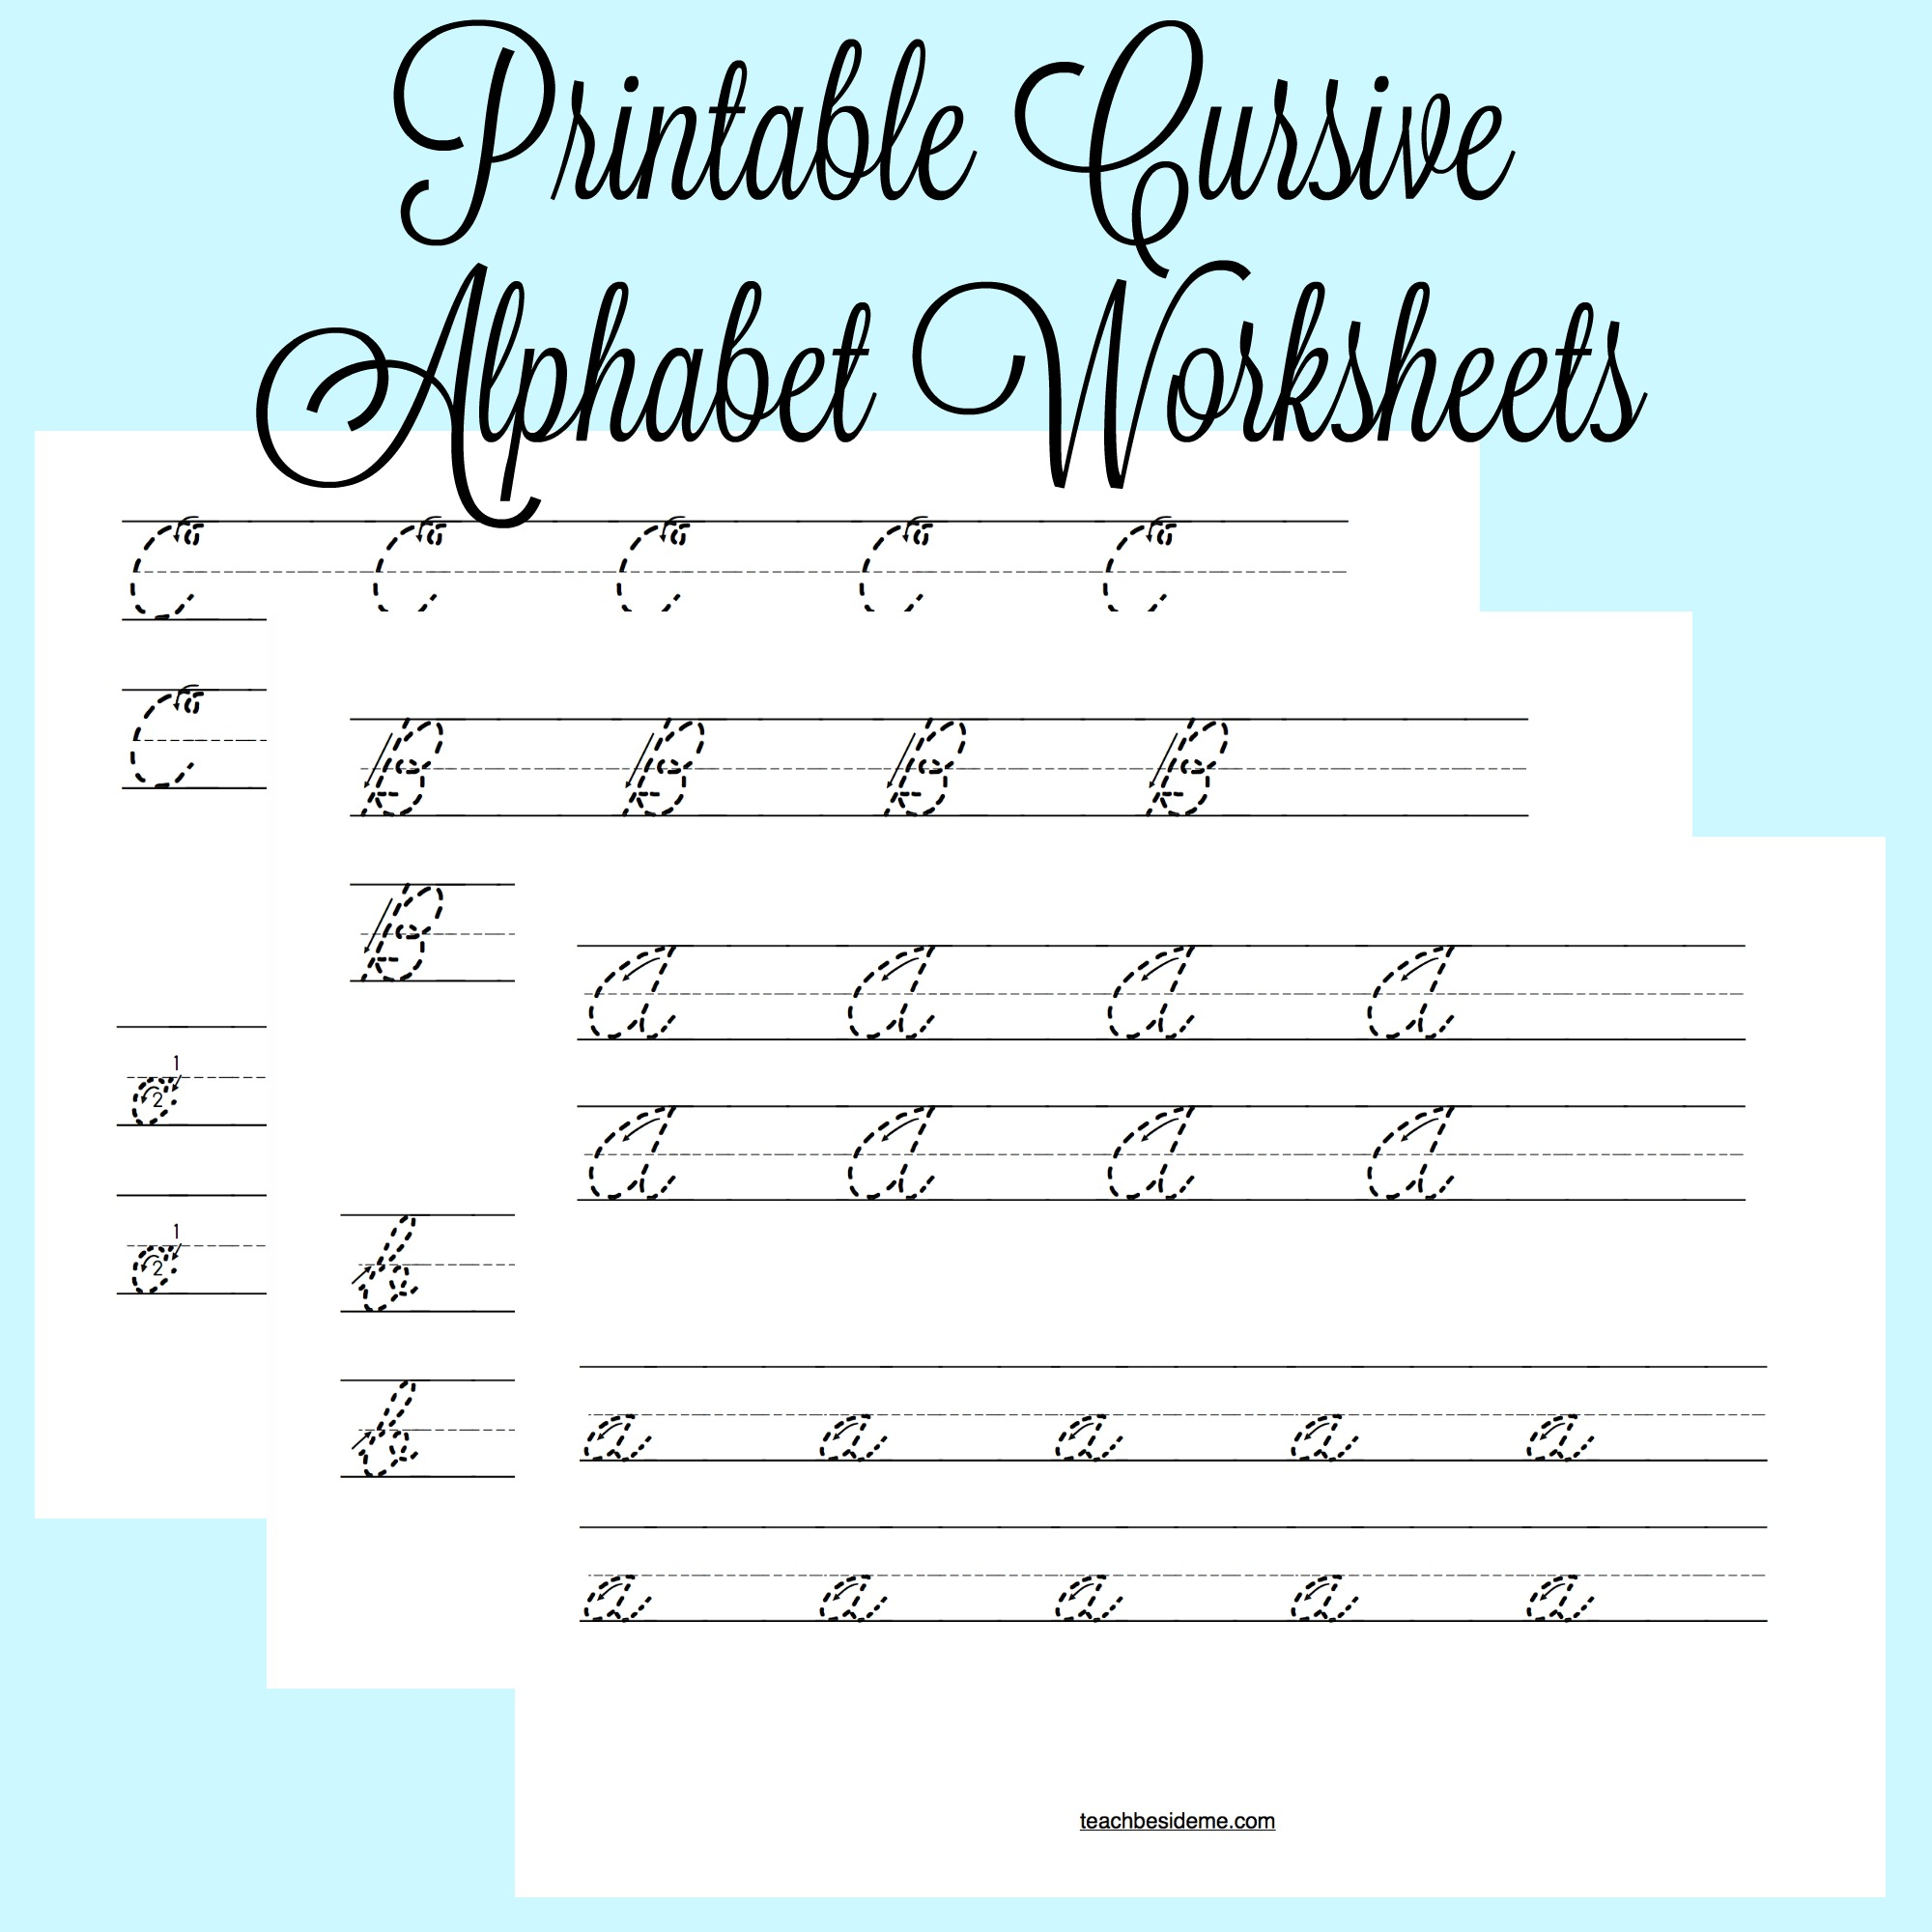 cursive alphabet worksheets teach beside me. Black Bedroom Furniture Sets. Home Design Ideas